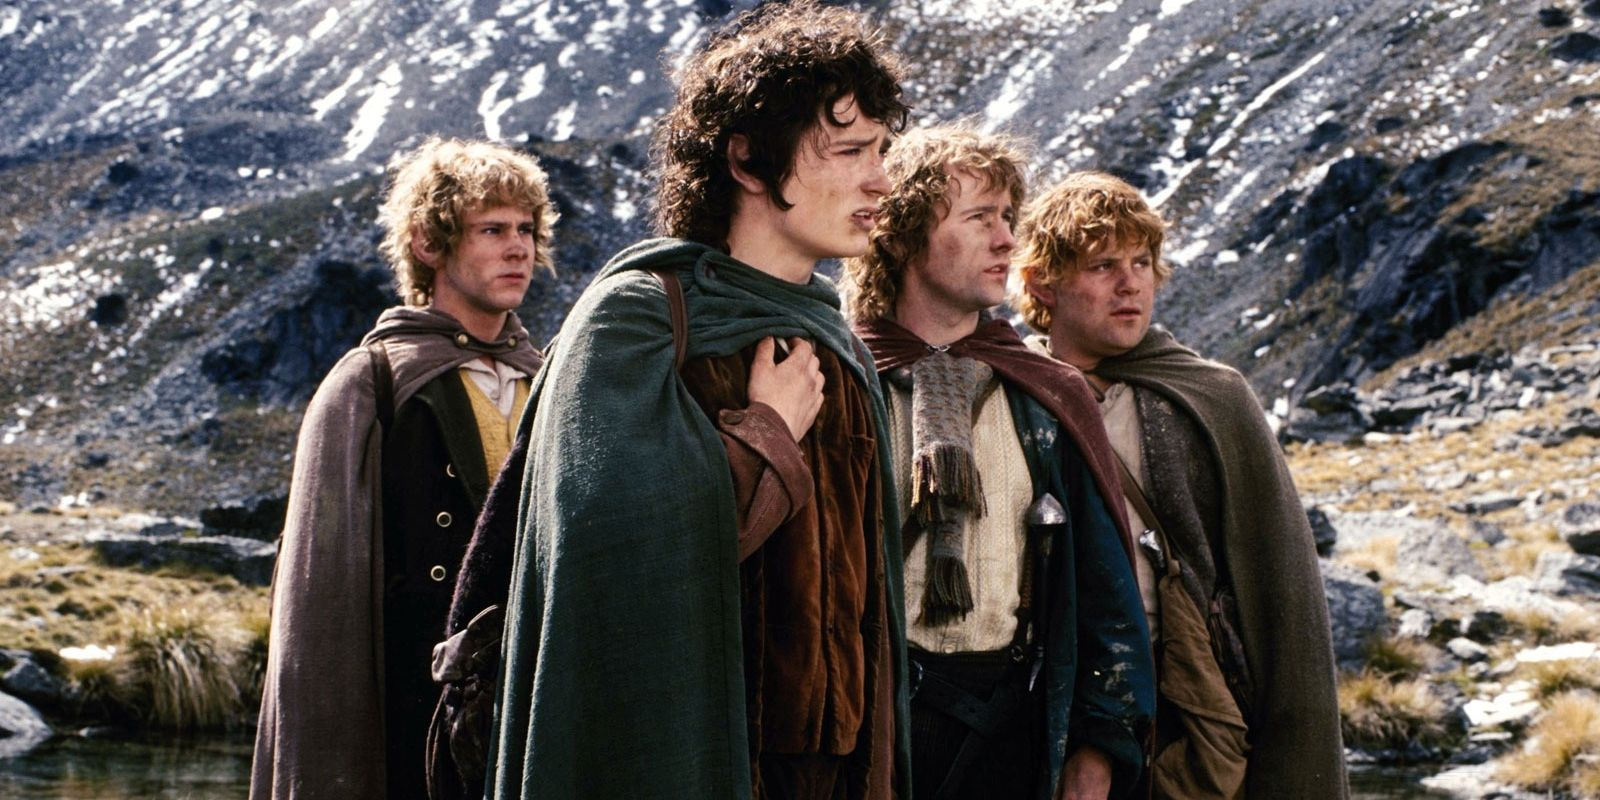 Lord of the Rings Cast Reunion Q&As Coming to Theaters Thanks to Alamo Drafthouse